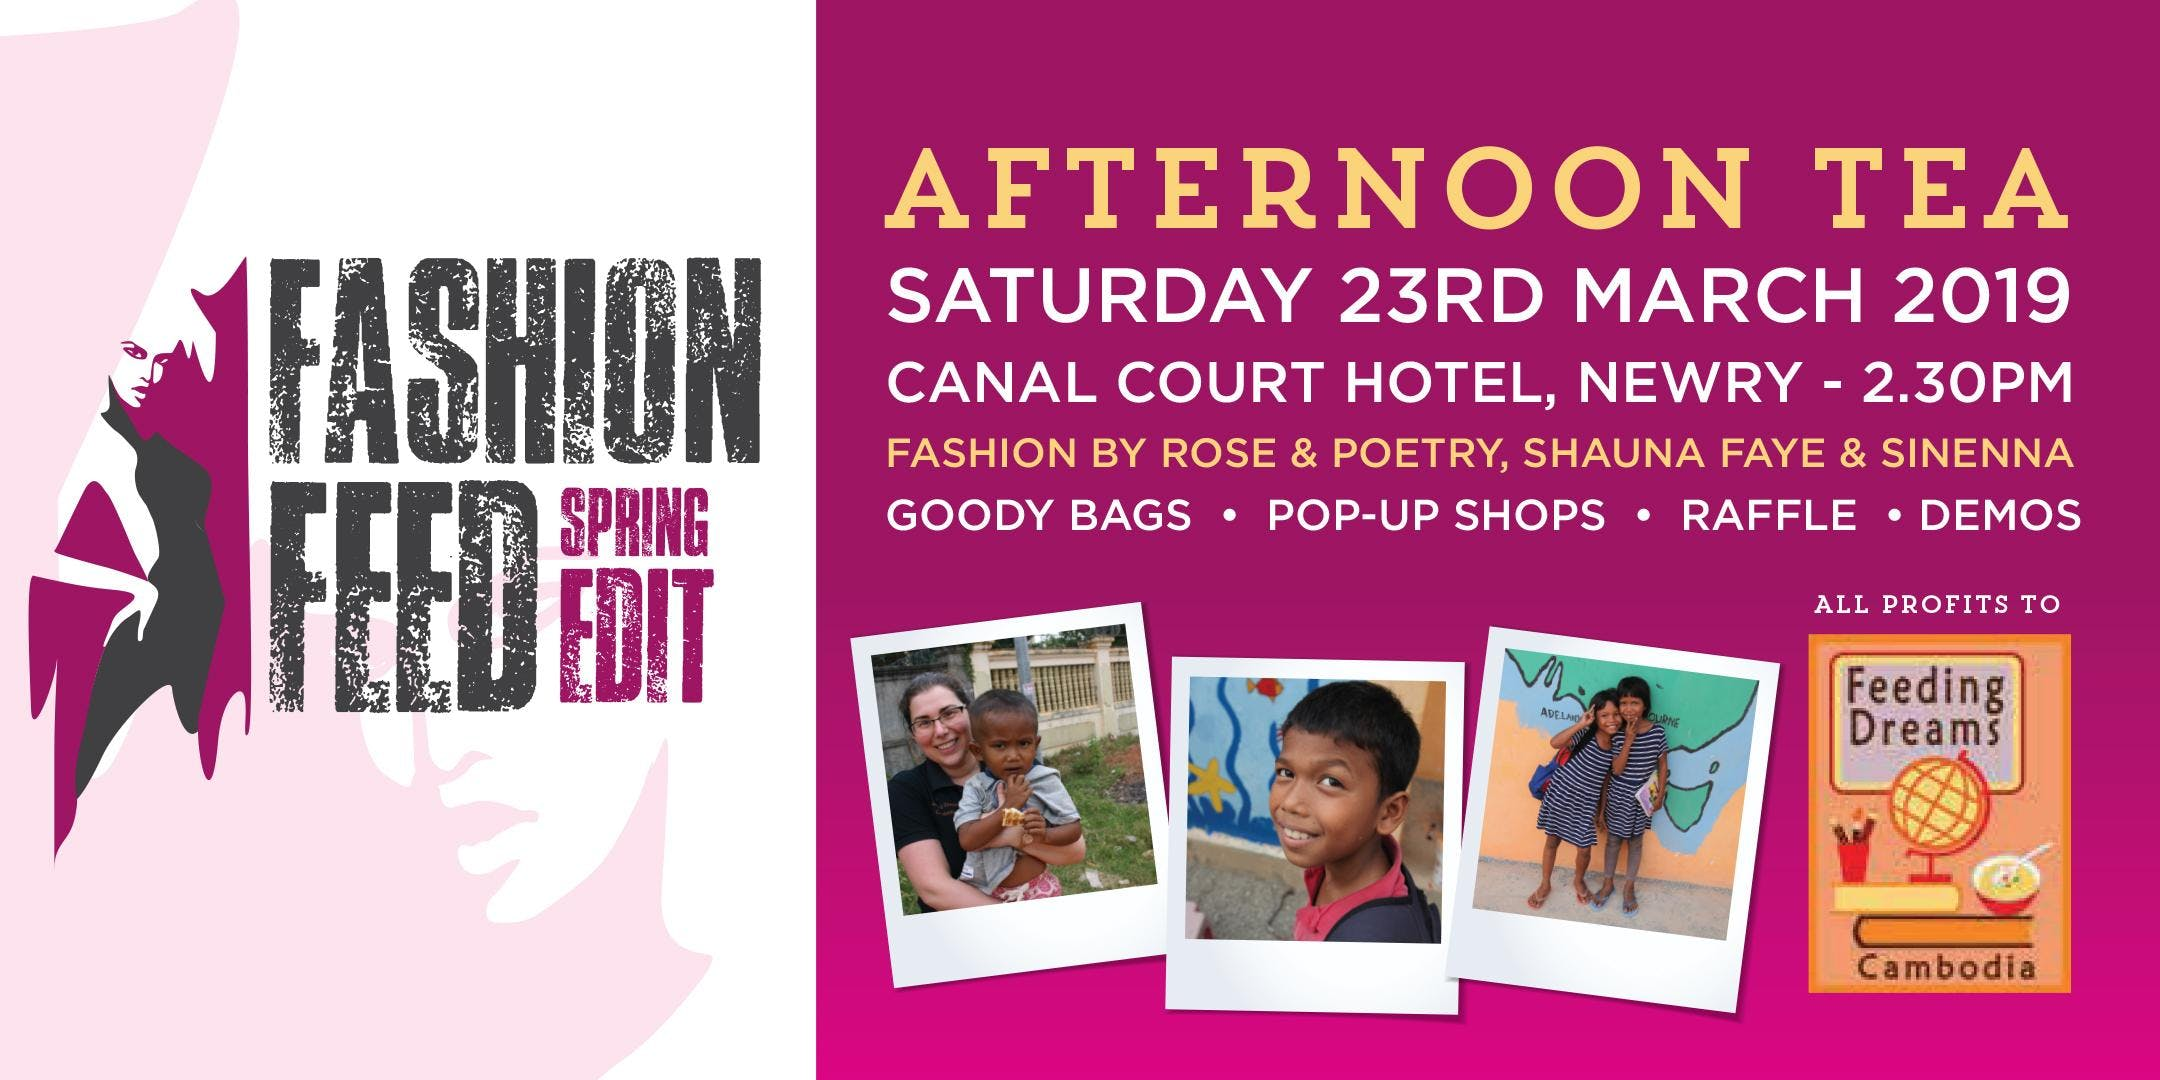 Newry Fashion Feed for Feeding Dreams Cambodi